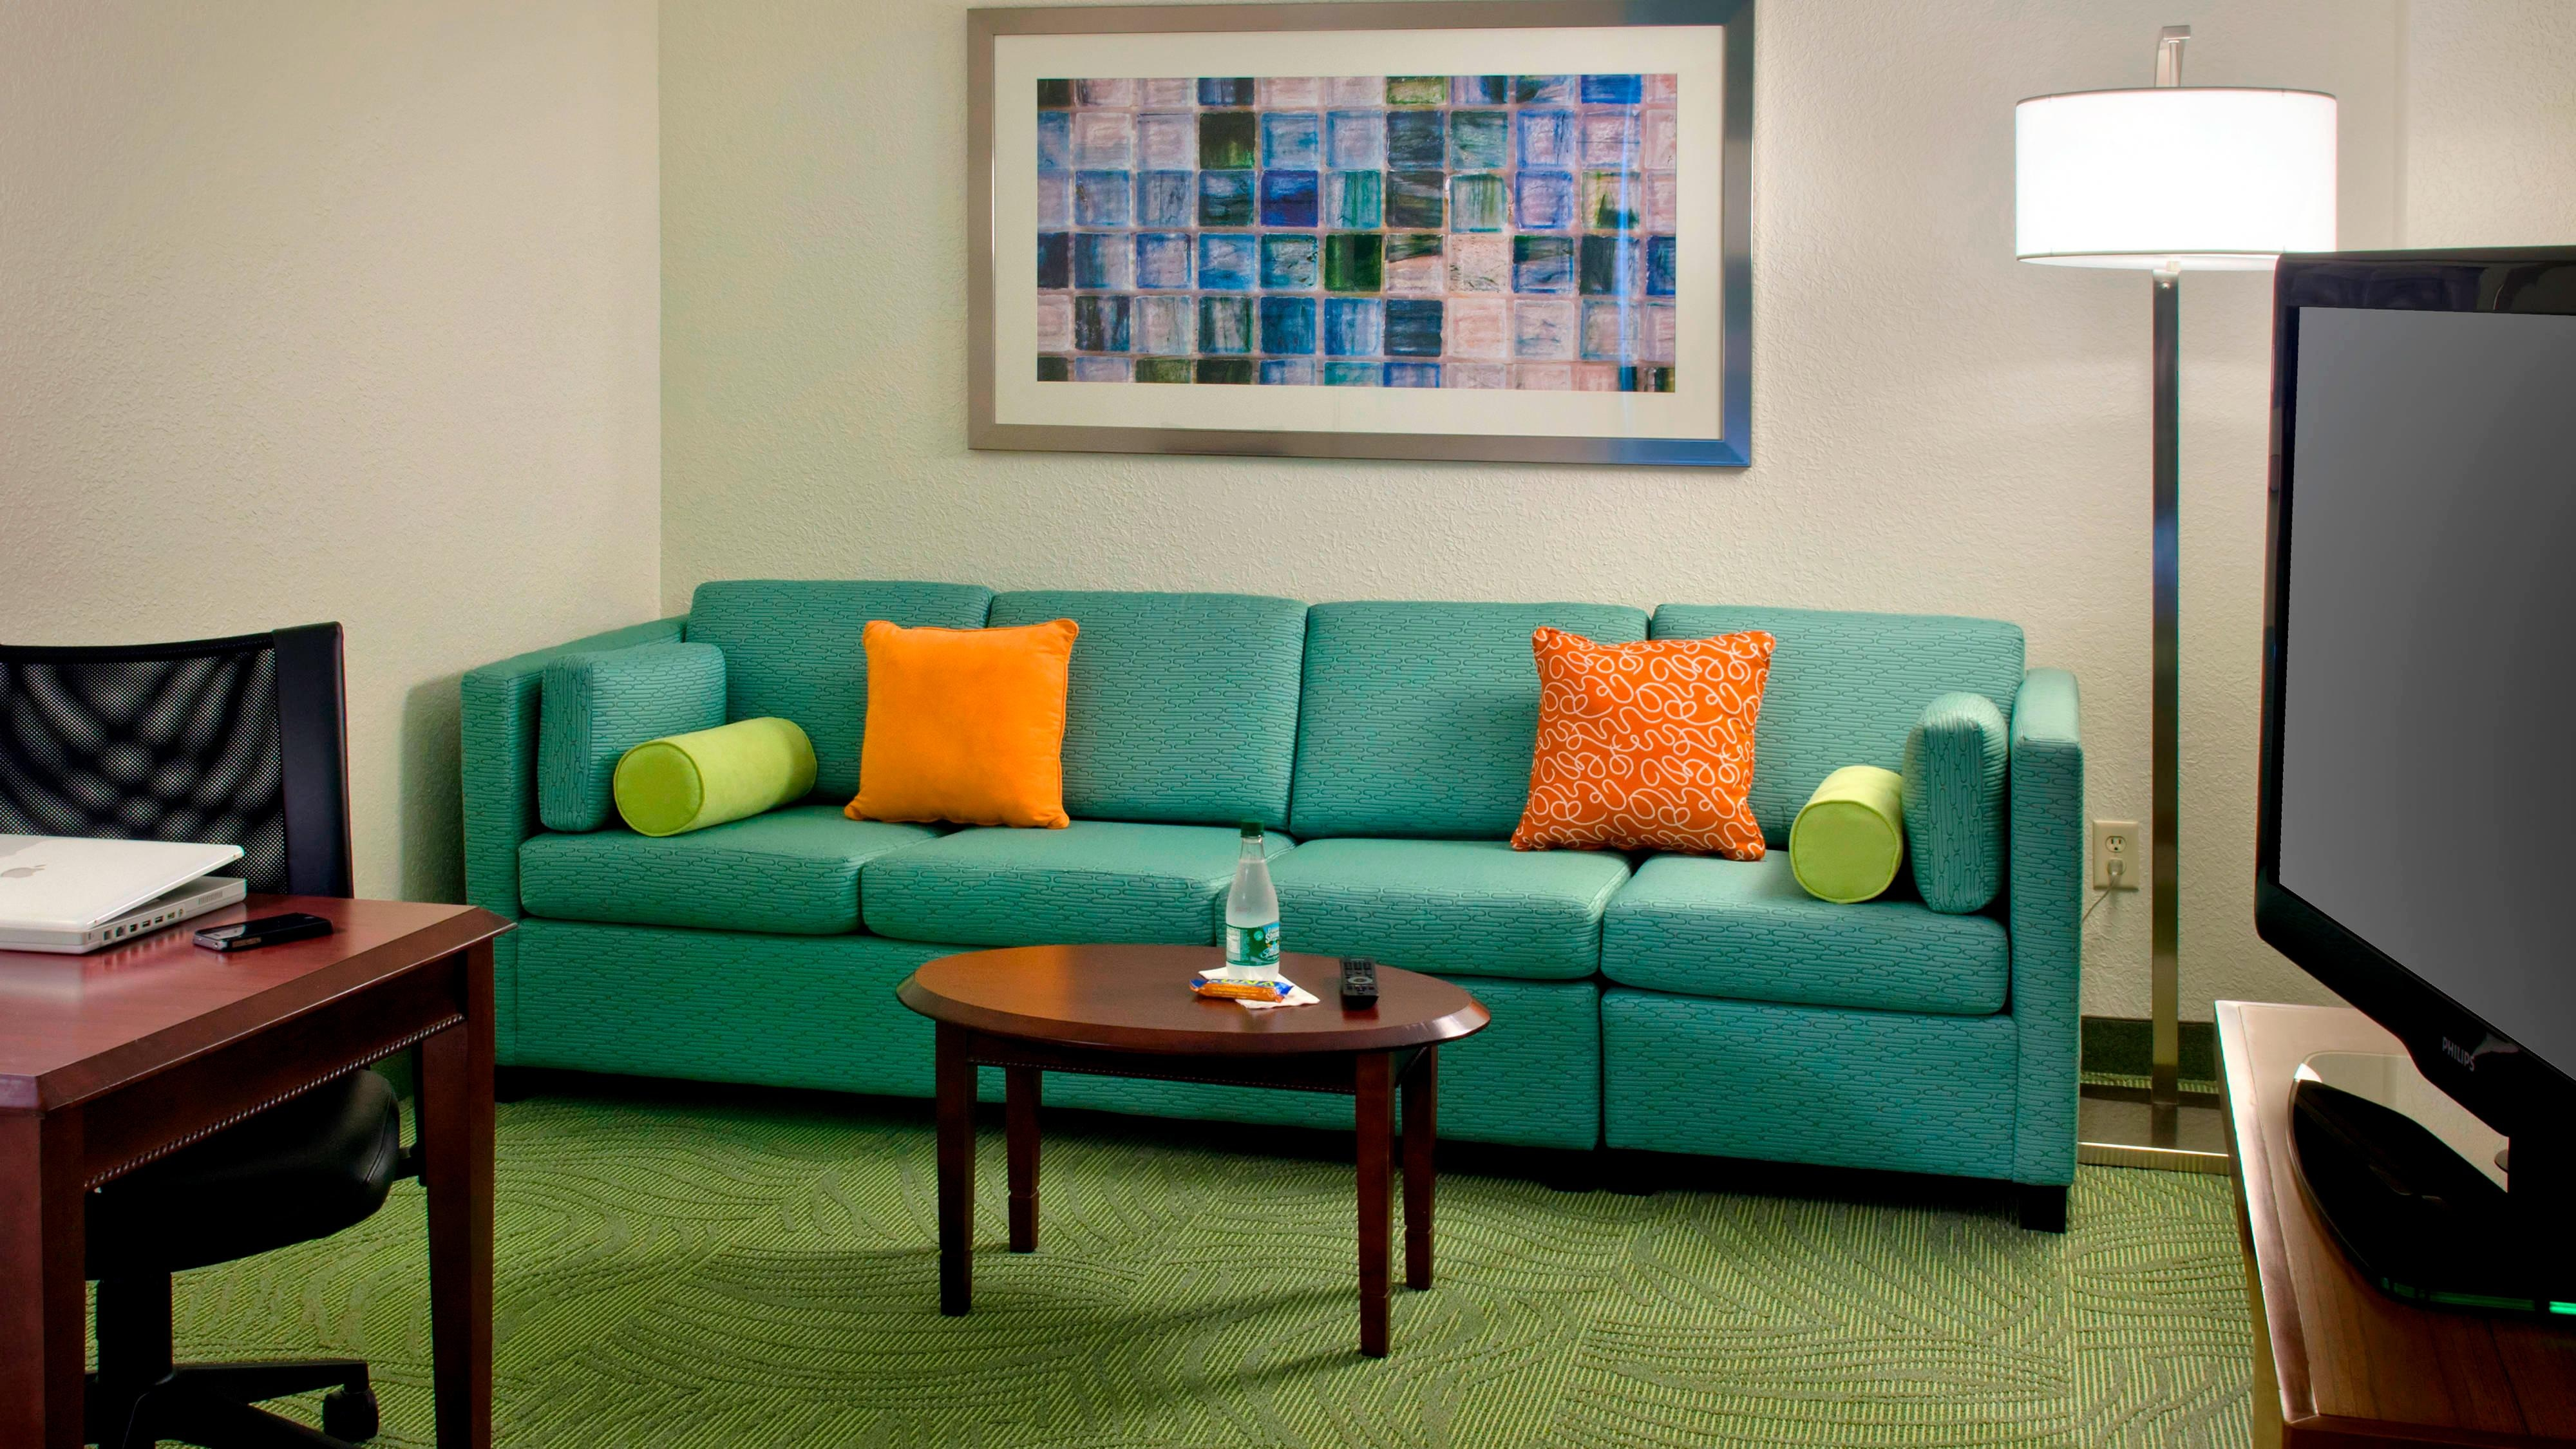 Danbury CT Hotels - Living Area